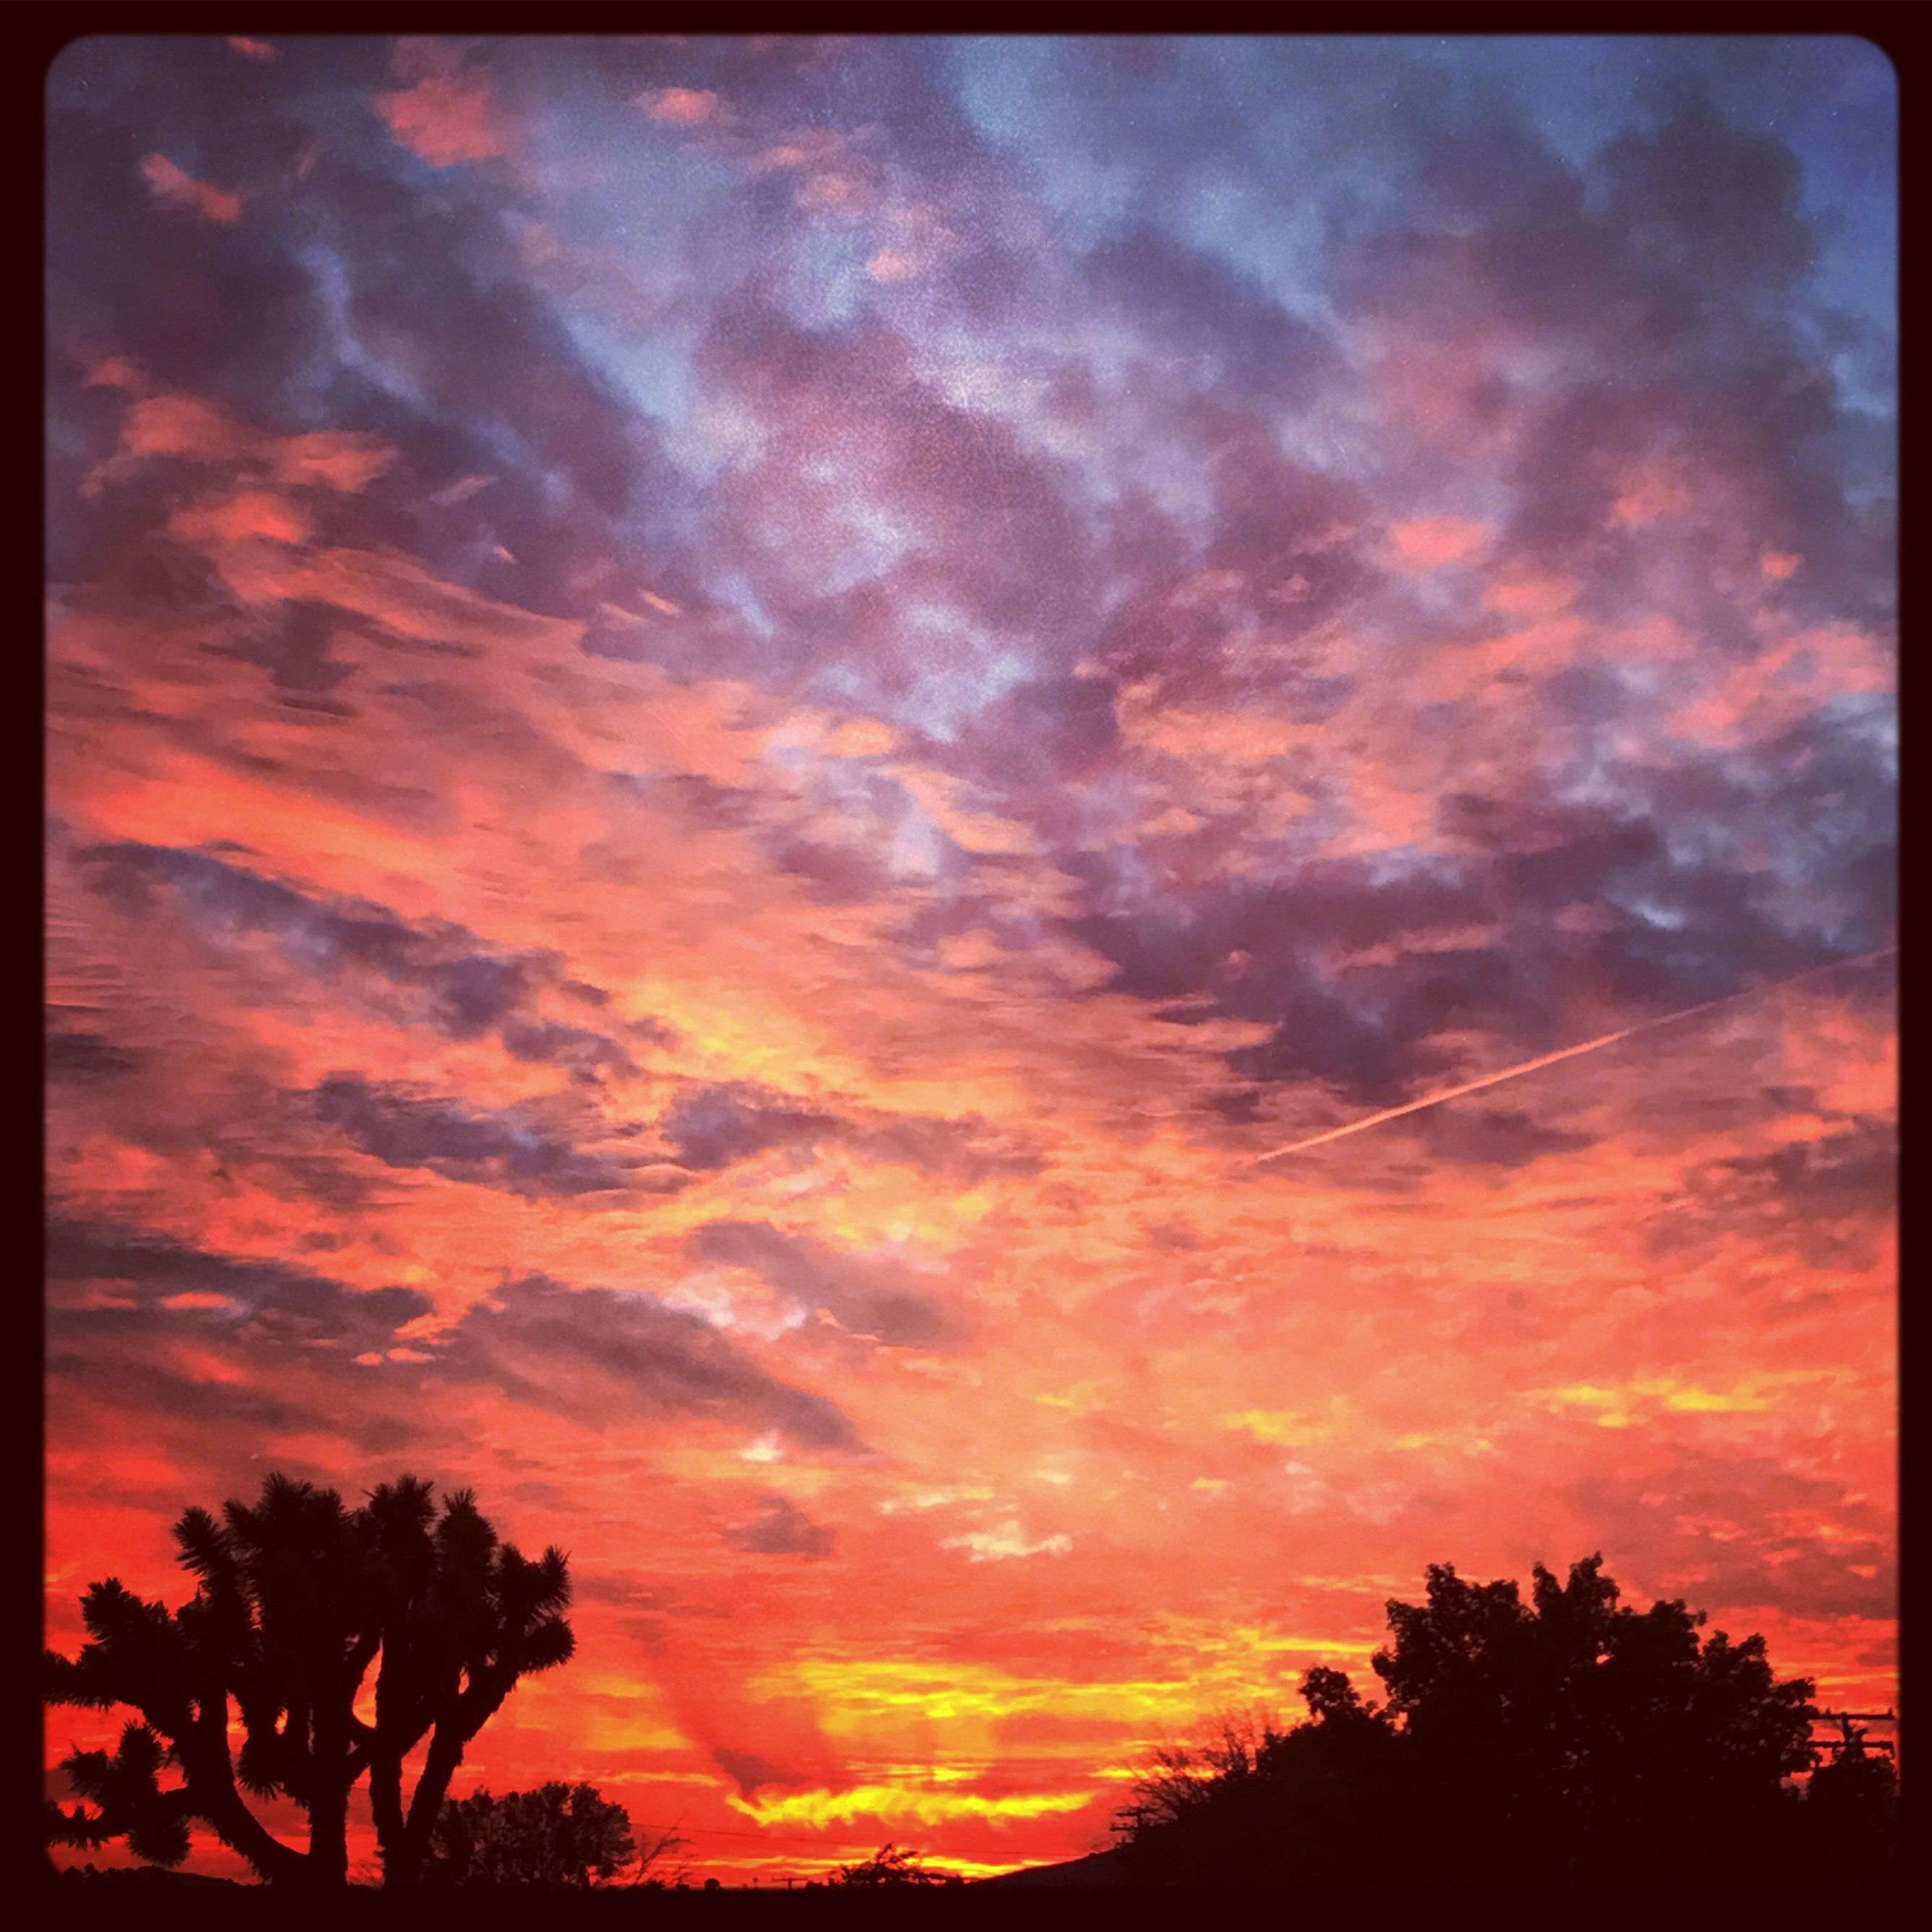 Photo Fun Desertskies Desert Sky Photography Landscape Sunrise Sunset Weather Clouds Stars Moon Colorful N Paint Photography Pig Painting Clouds